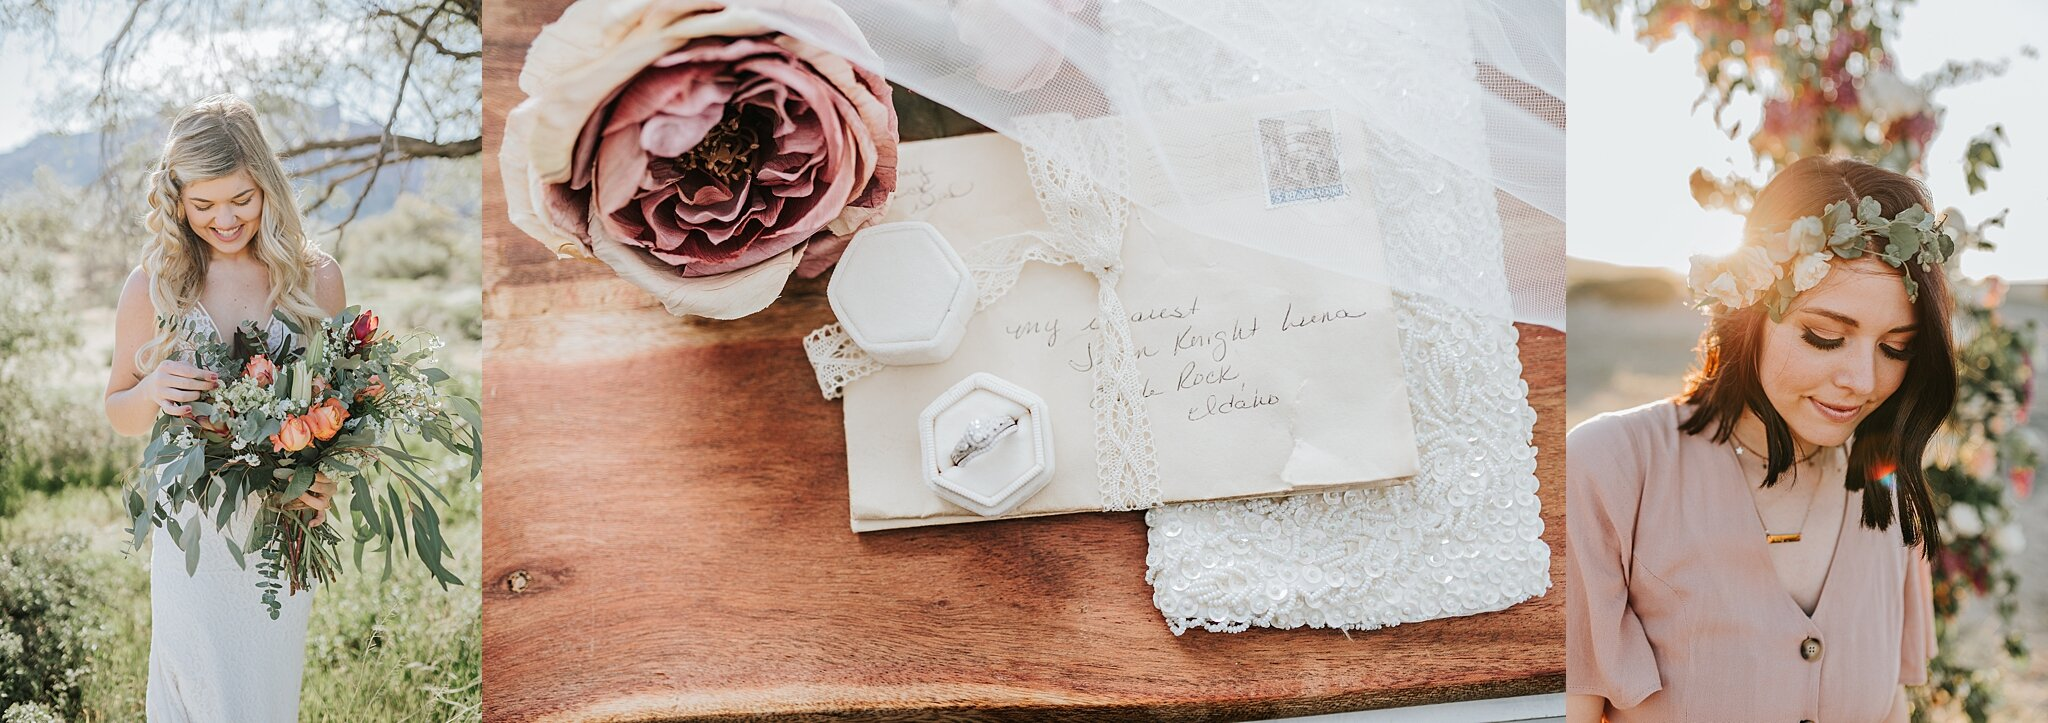 wedding-florals-knoxville-dream-wedding-blush-bride-look-for-the-light-photo-video